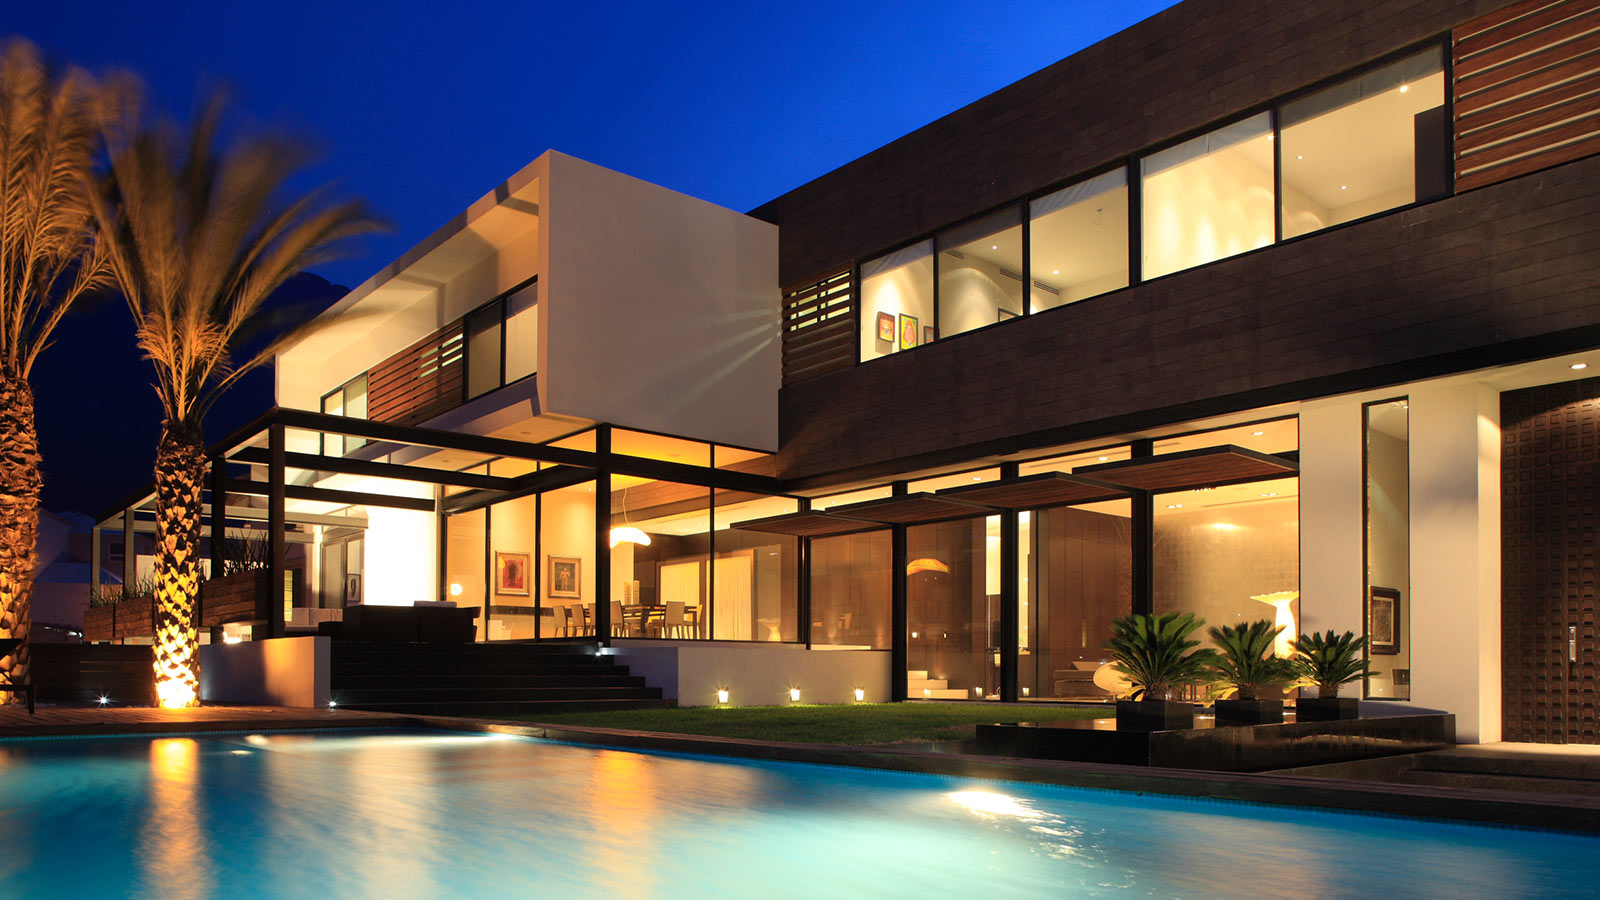 Contemporary house in monterrey mexico for a luxurious for Exclusive house